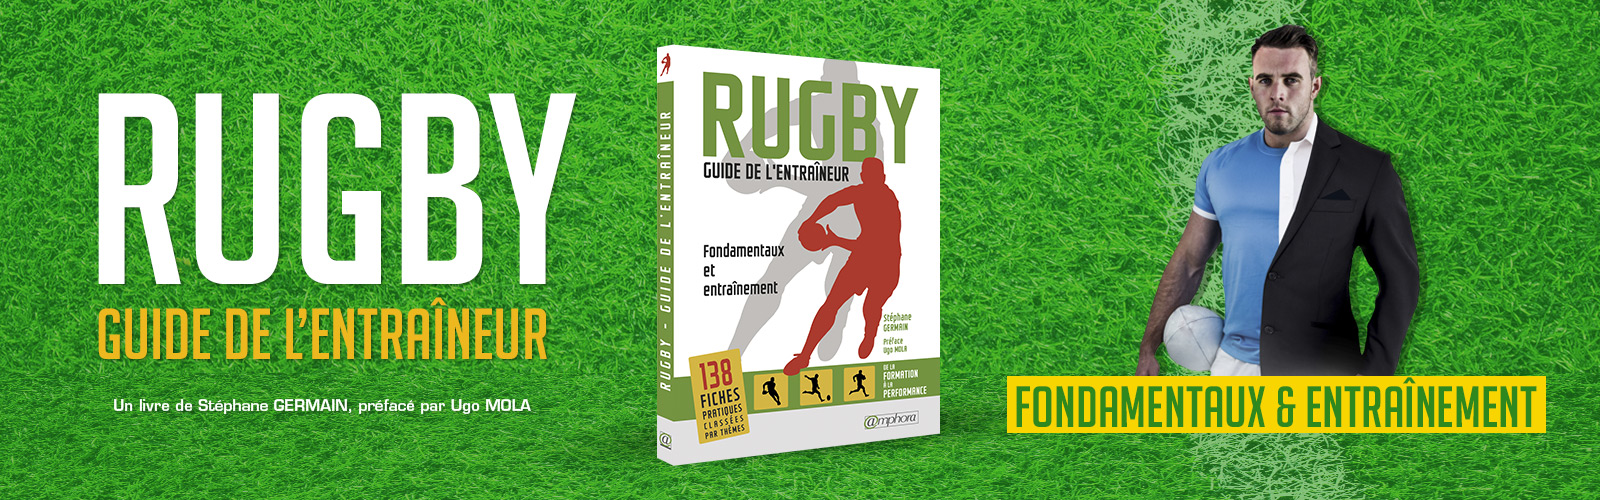 slide_rugby-guide-entraineur